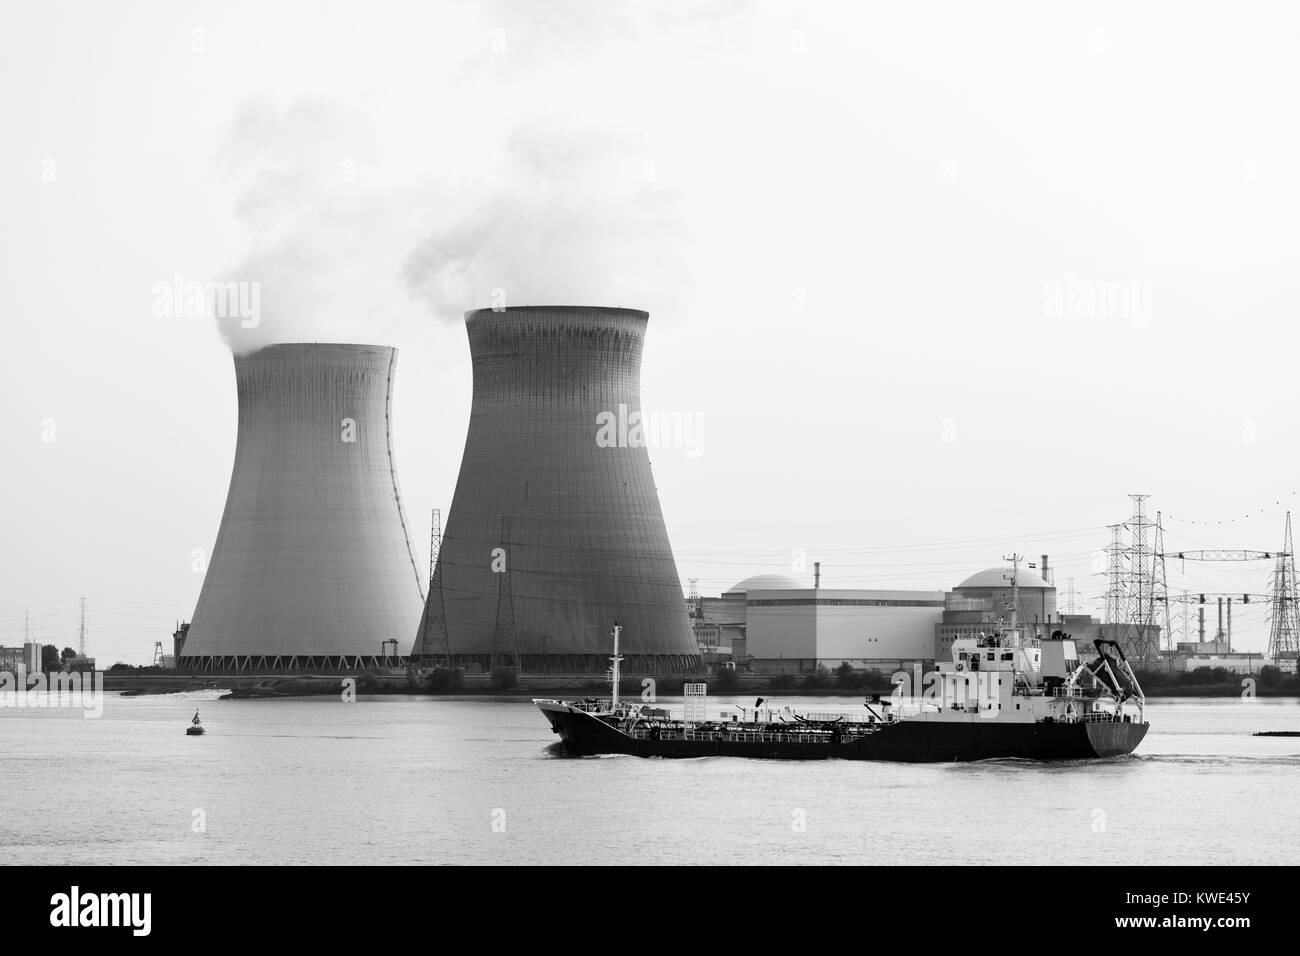 Nuclear power plant Doel in Belgium in black and white. - Stock Image